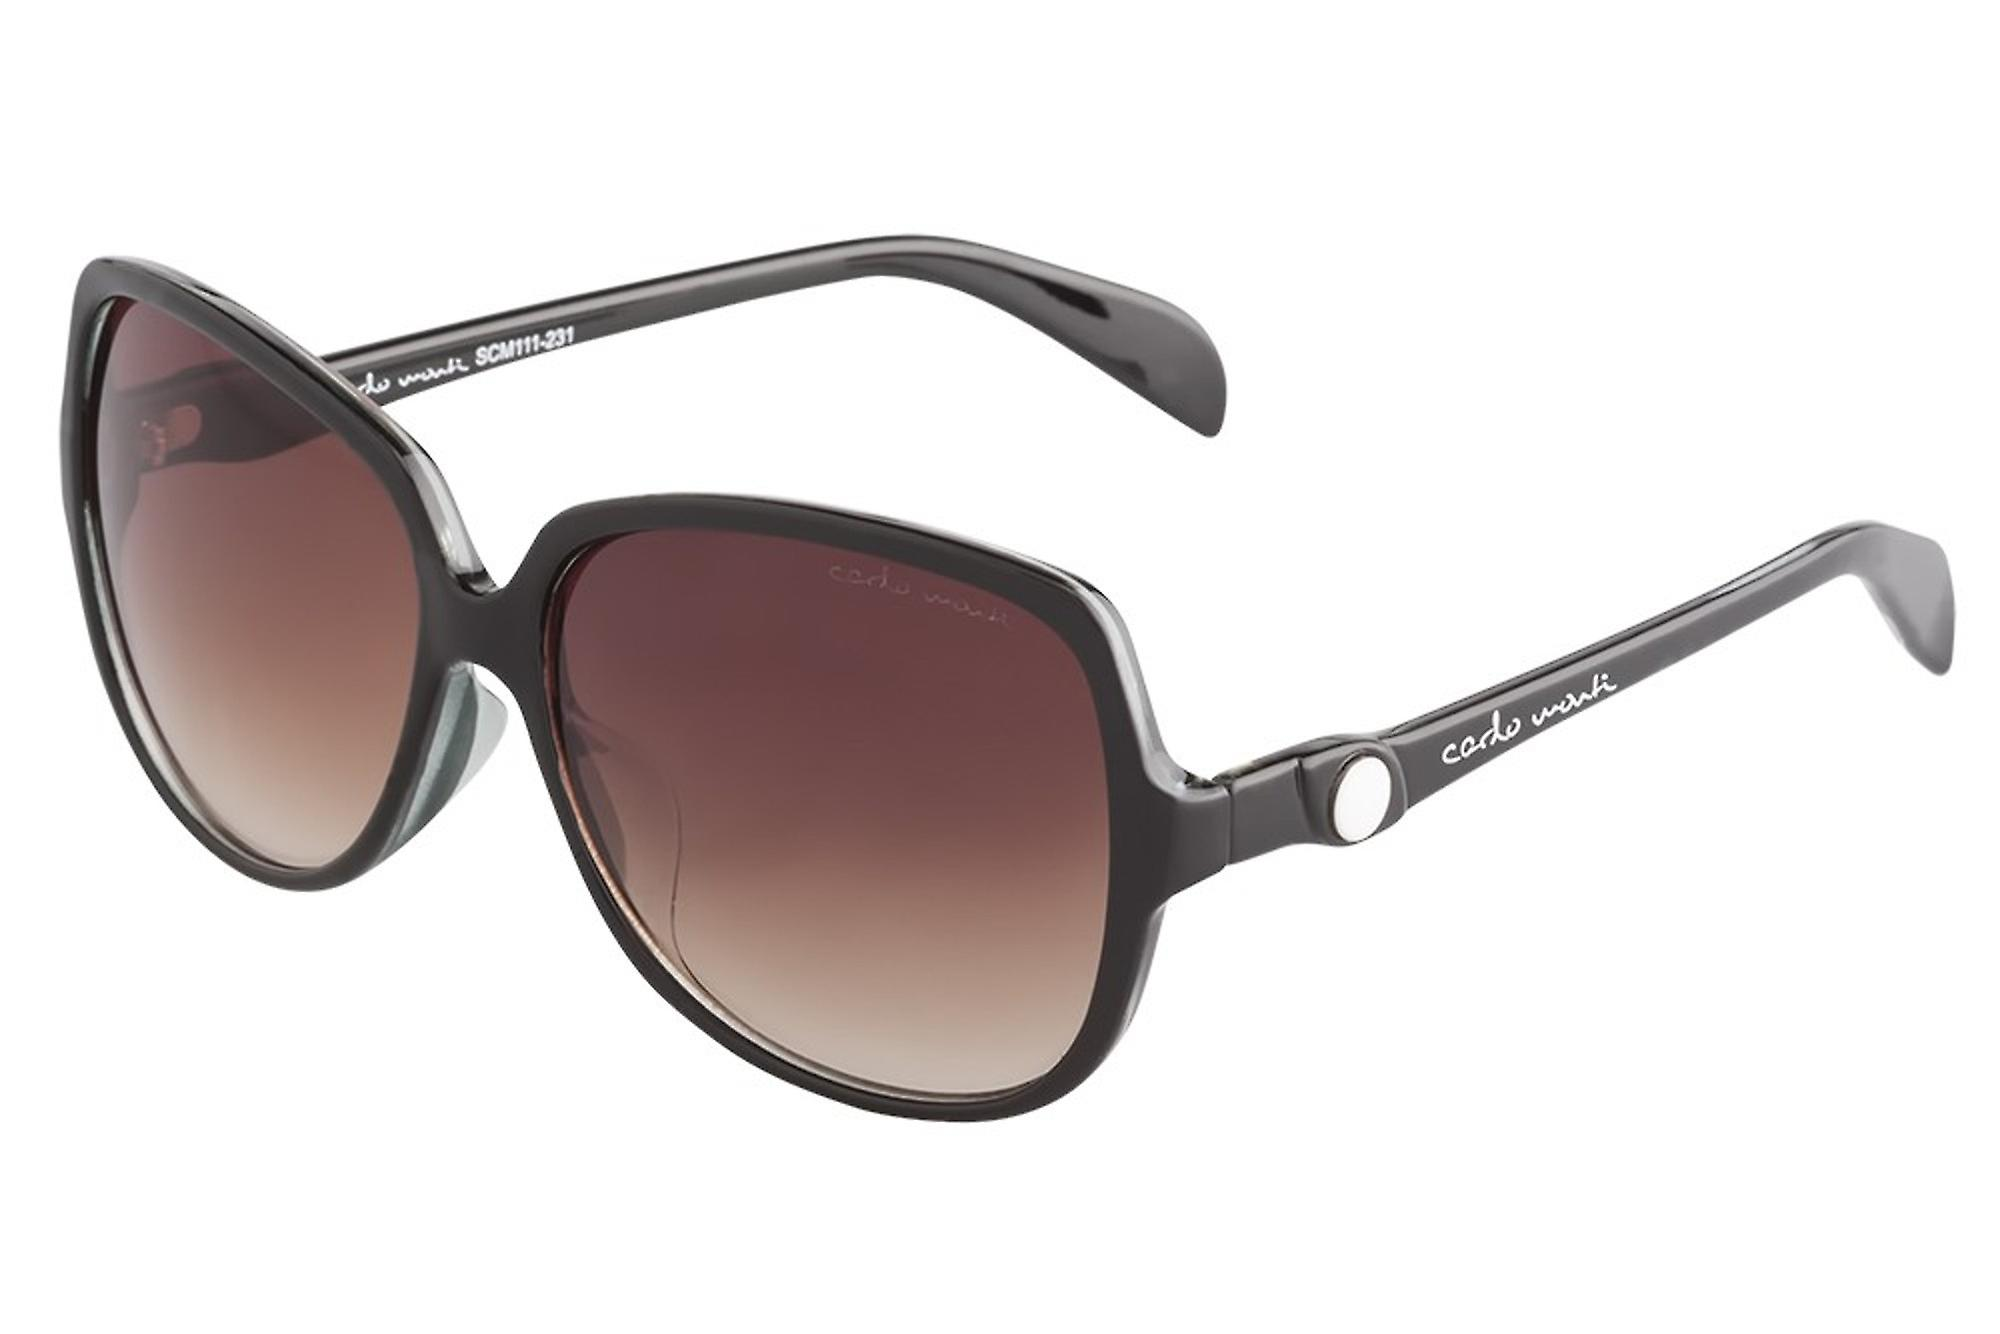 Elegant sunglasses for women by Carlo Monti with 100% UV protection | solid polycarbonate frame, high quality sunglasses case, microfiber glasses pouch and 2 years warranty | SCM111-231 Ravenna